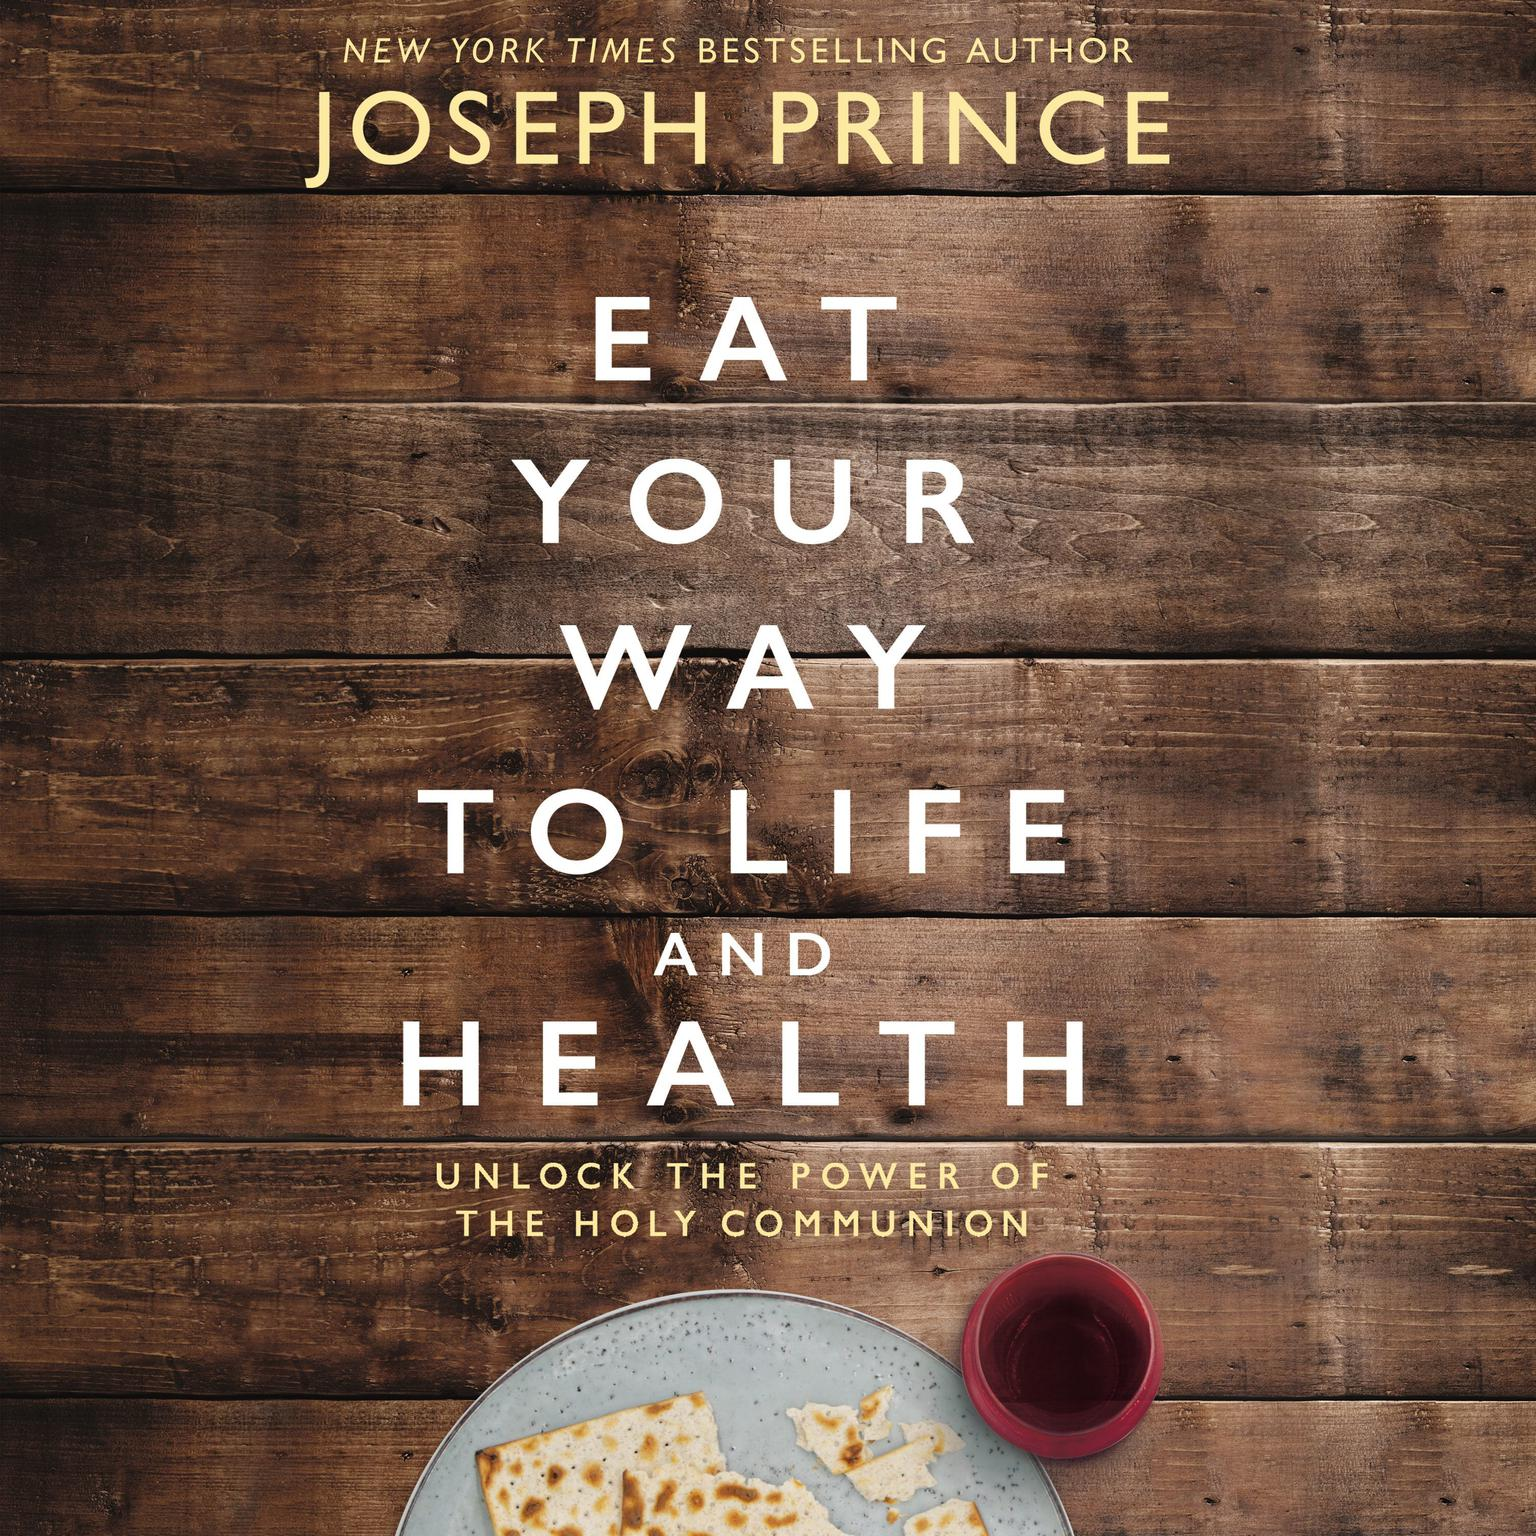 Printable Eat Your Way to Life and Health: Unlock the Power of the Holy Communion Audiobook Cover Art